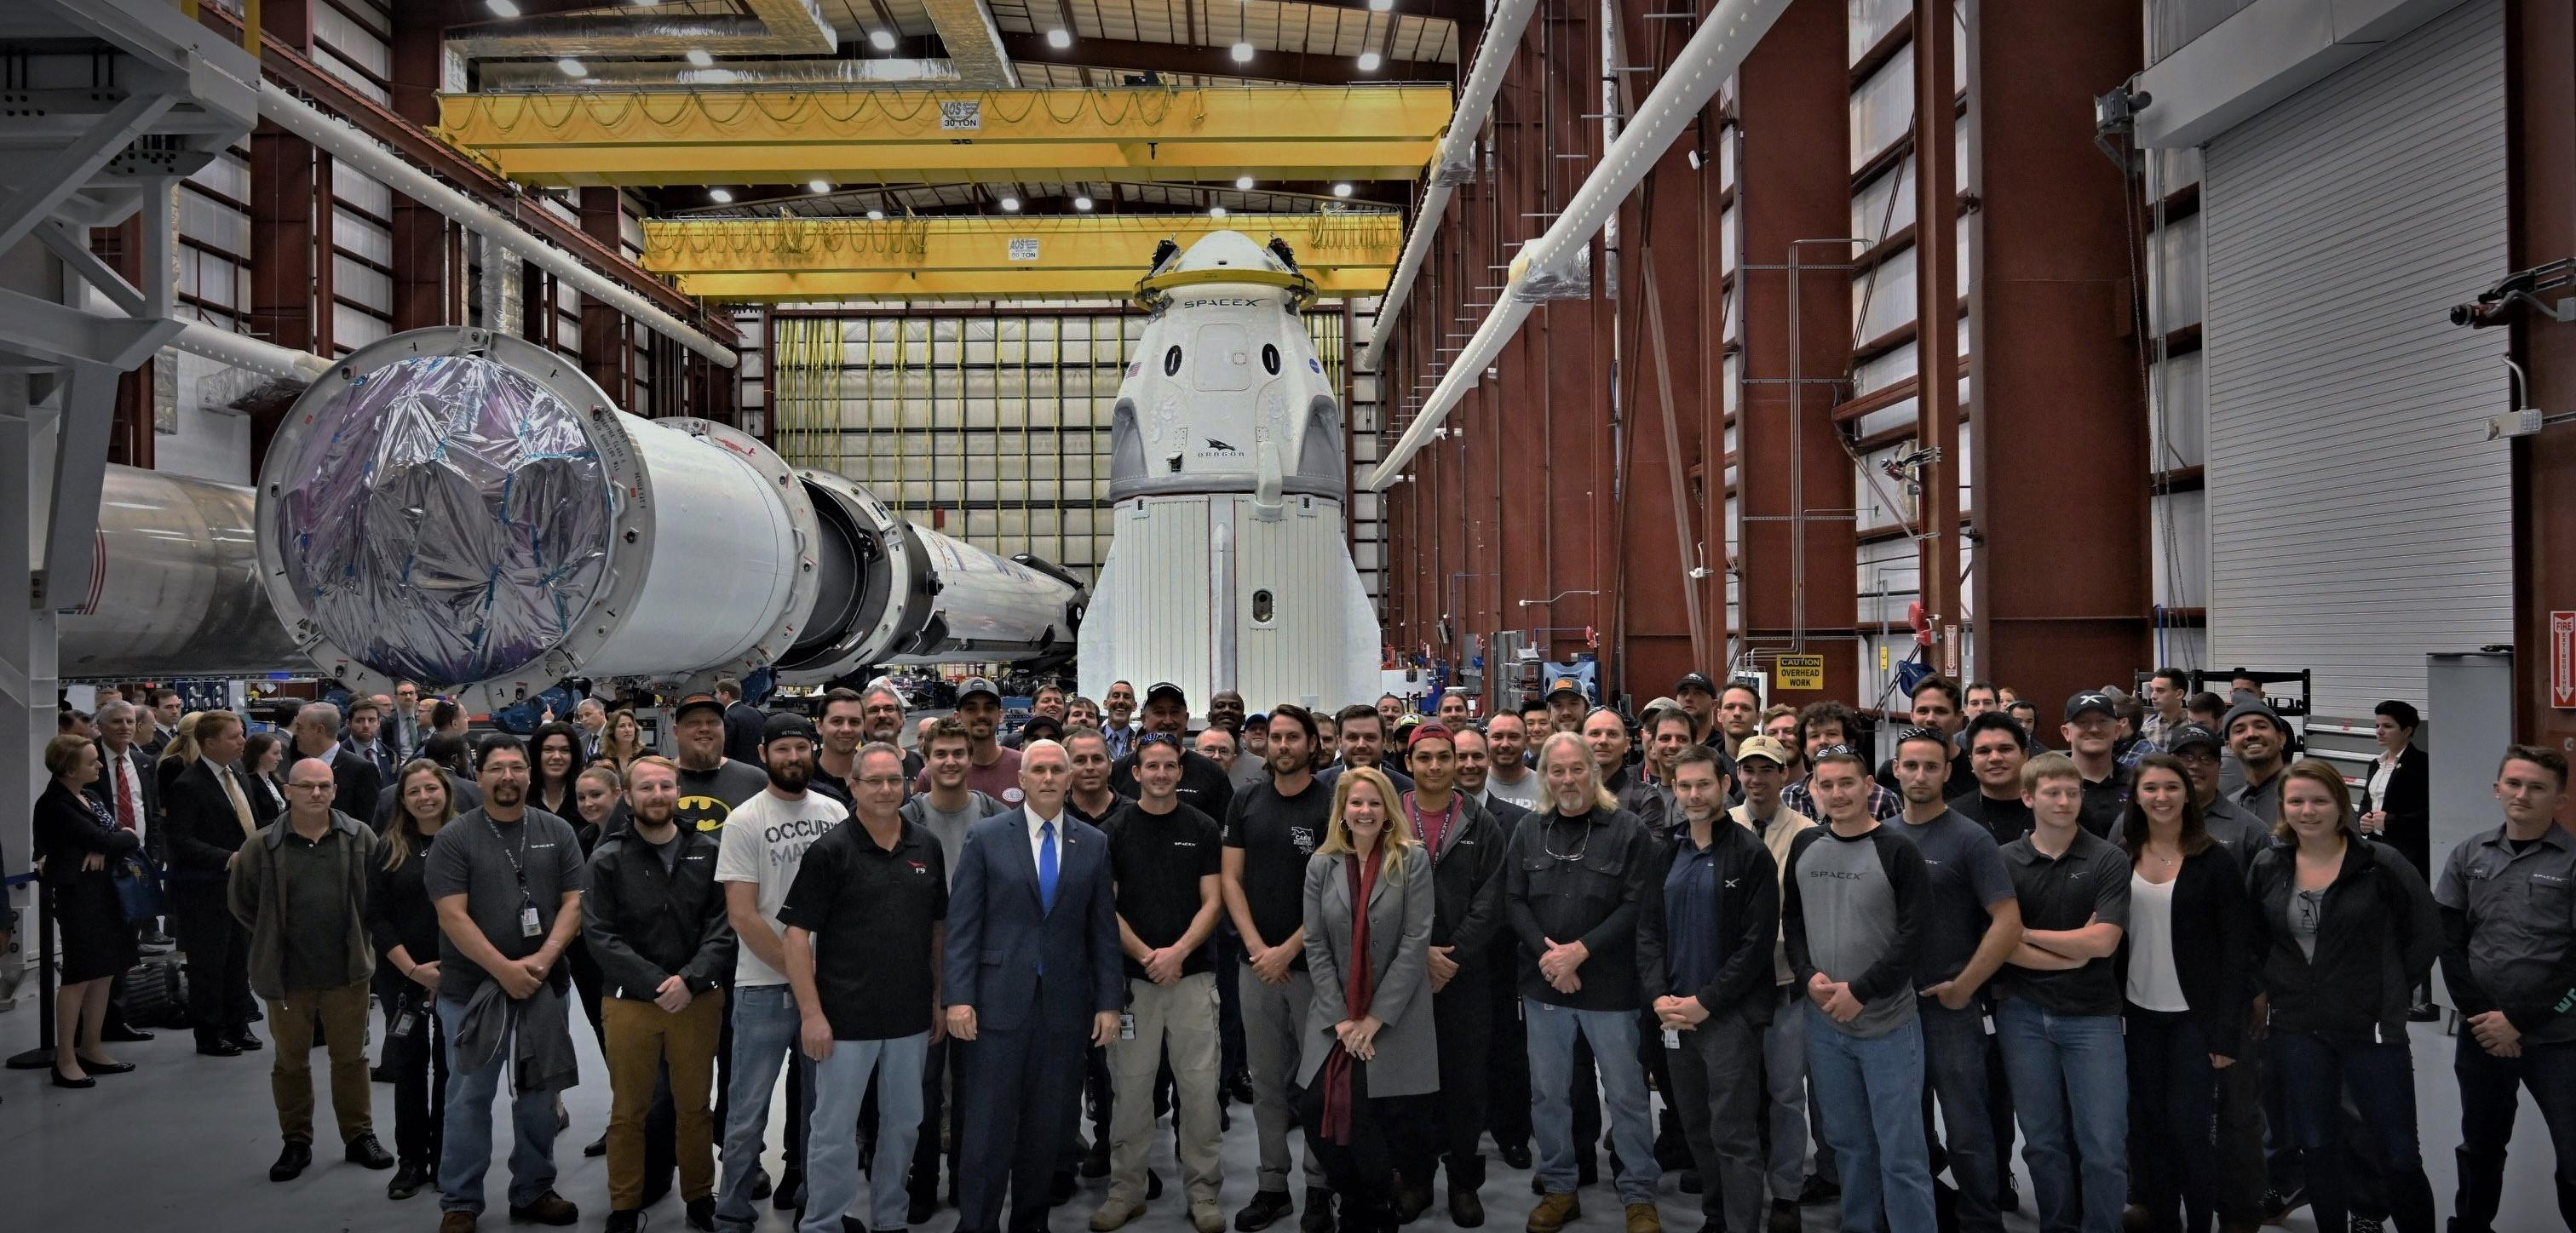 Crew Dragon DM-1 and Falcon 9 B1051 39A (SpaceX) 2 crop